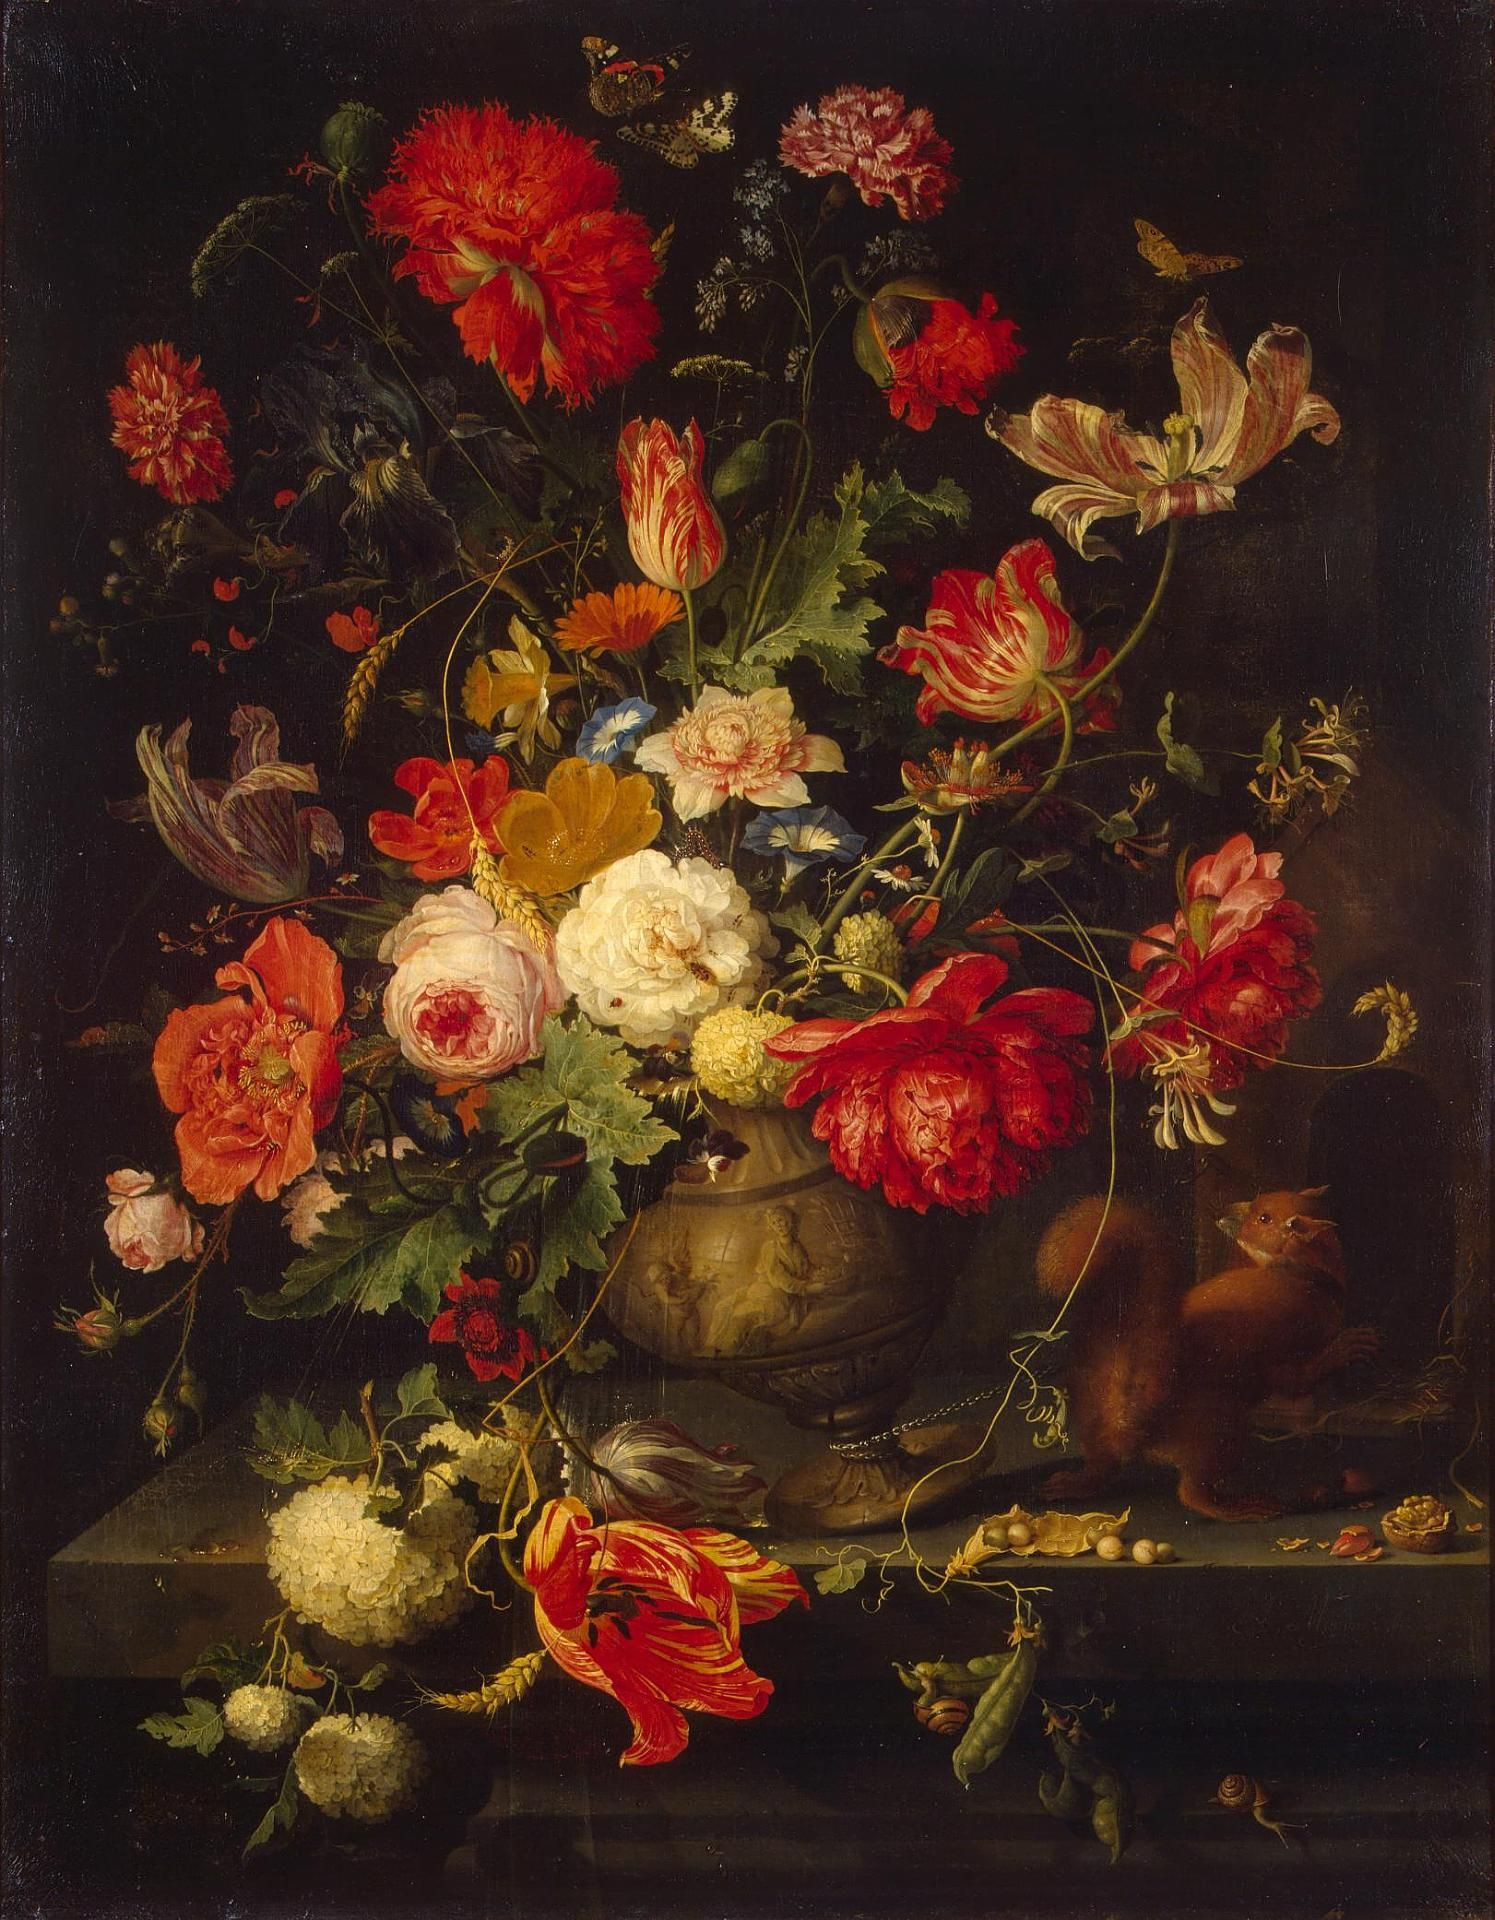 van gogh vase with cornflowers and poppies of abraham mignon vase of flowers second half of 17th century hermitage with abraham mignon vase of flowers second half of 17th century hermitage museum d¦d²dµn'n‹ d² d²dd·dµ 1660 ddd½don' dŸd